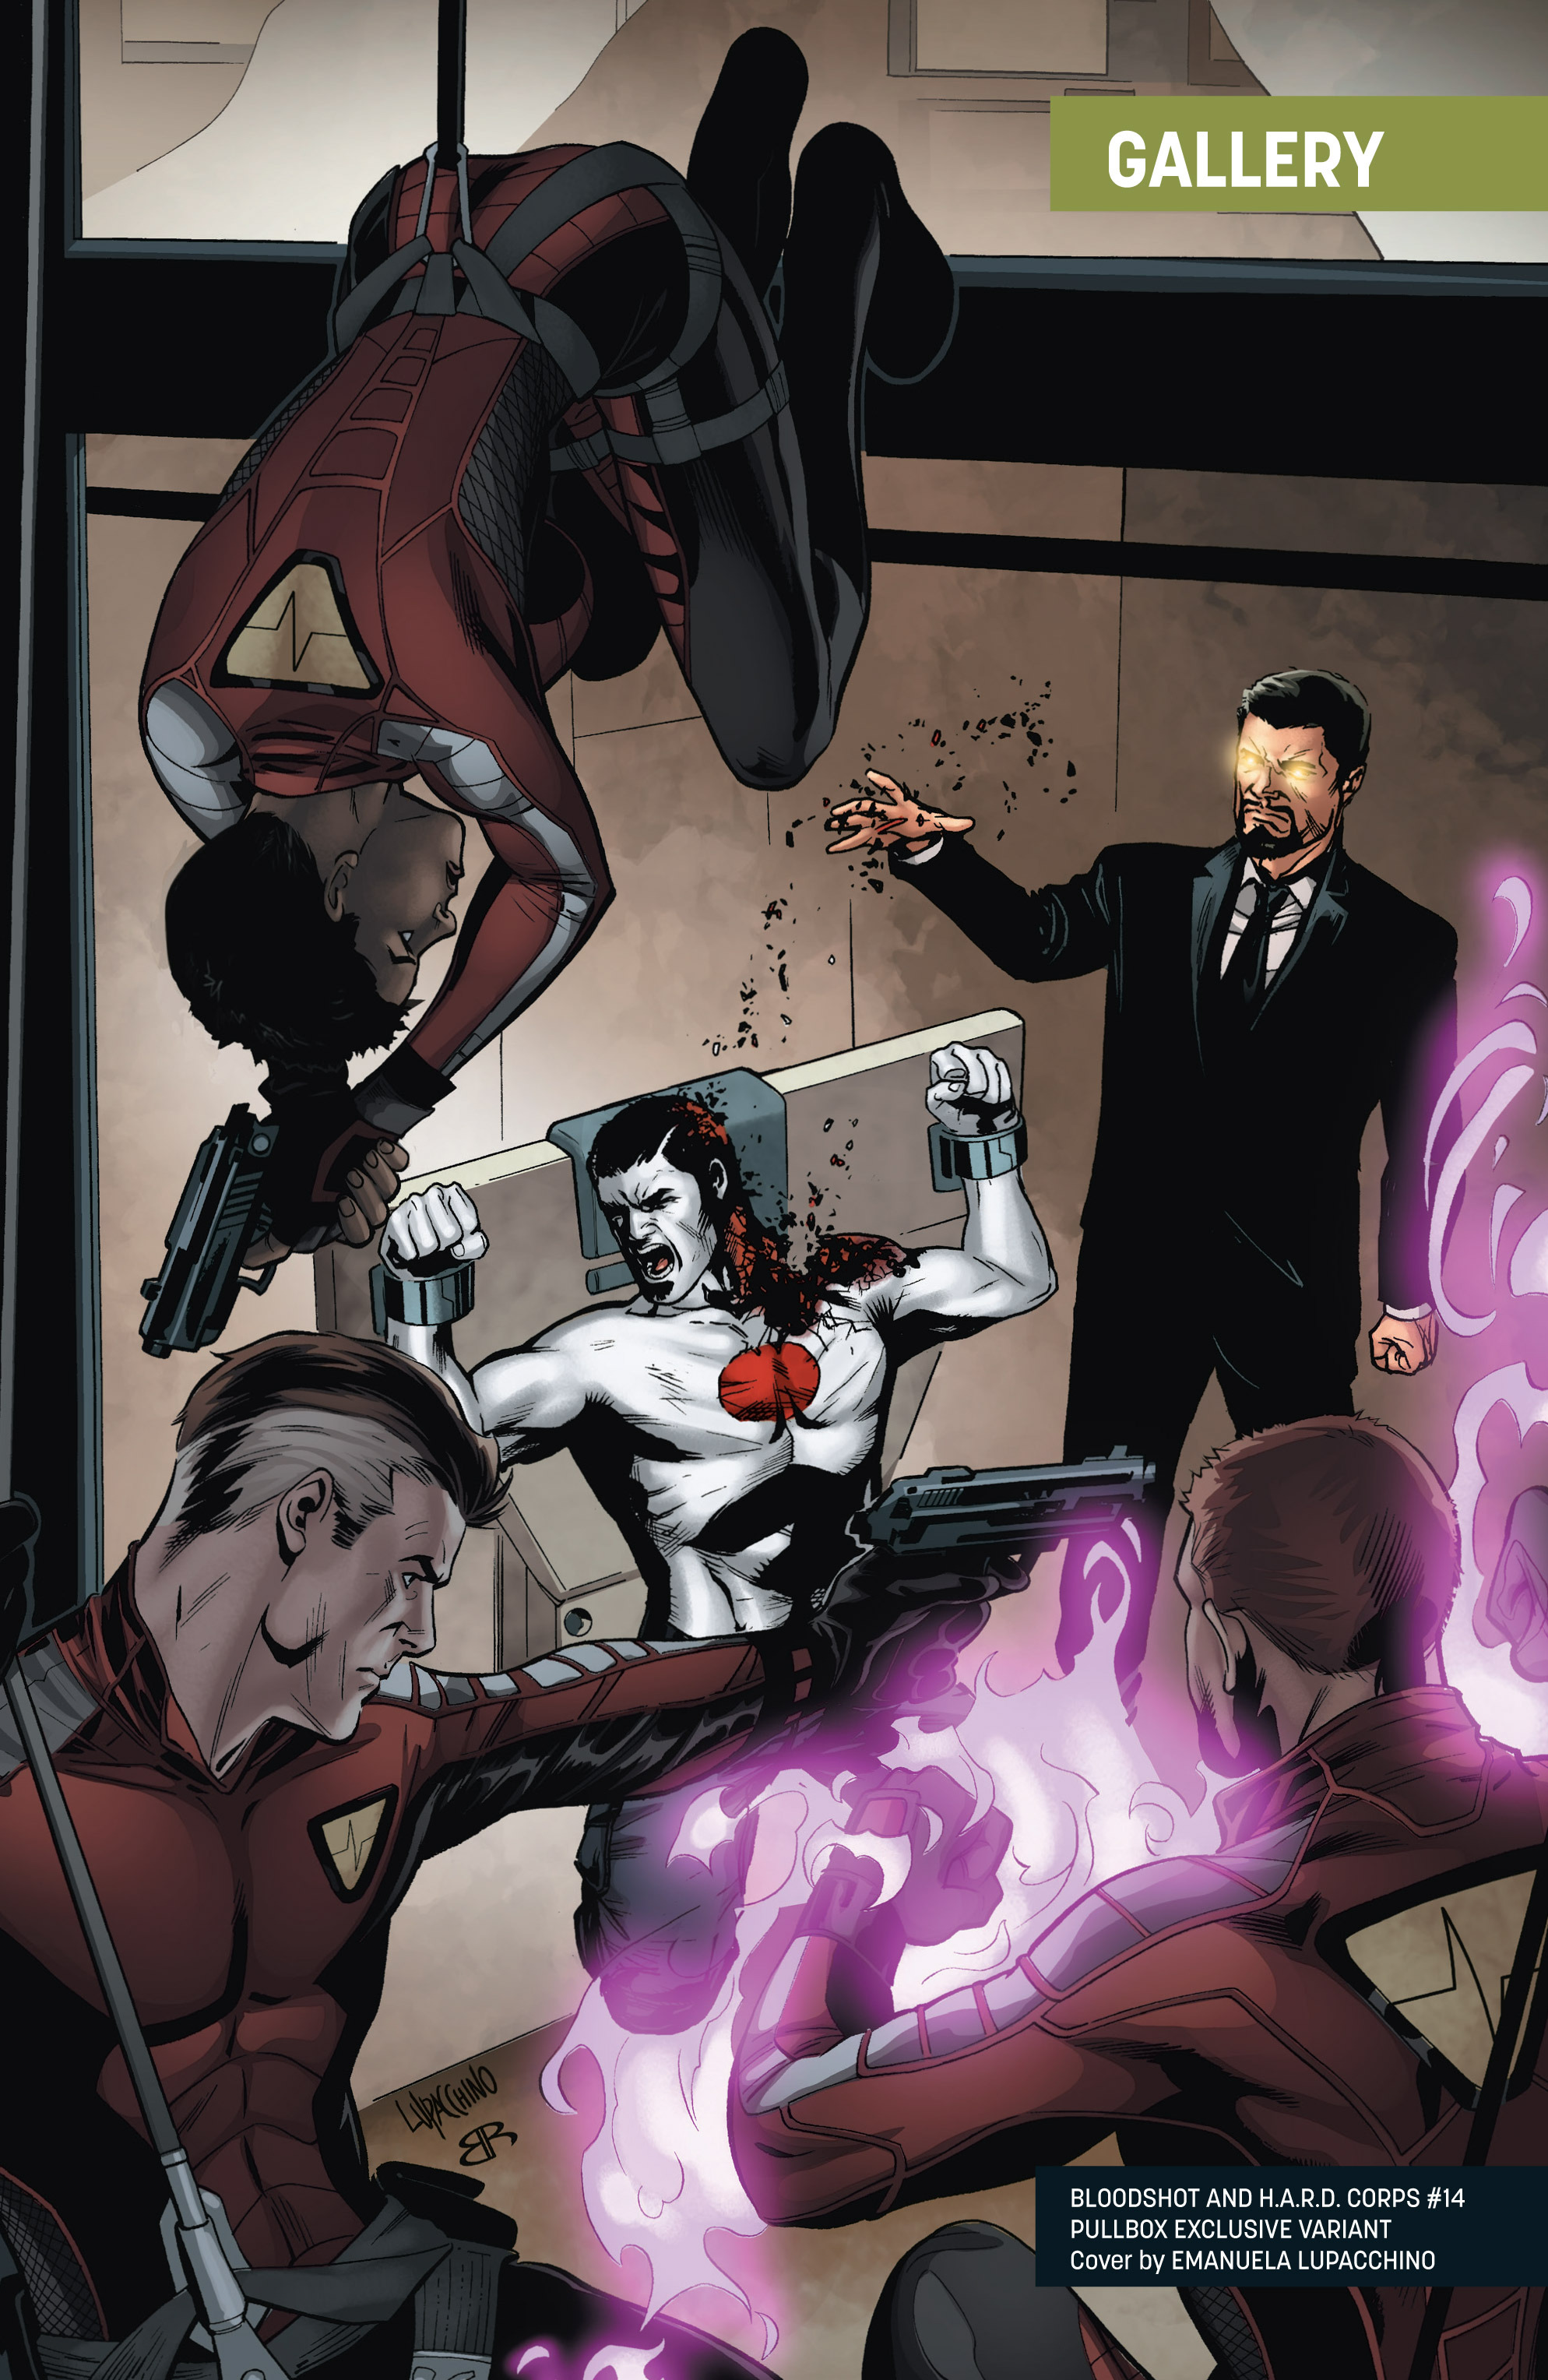 Read online Bloodshot and H.A.R.D.Corps comic -  Issue # TPB 4 - 122